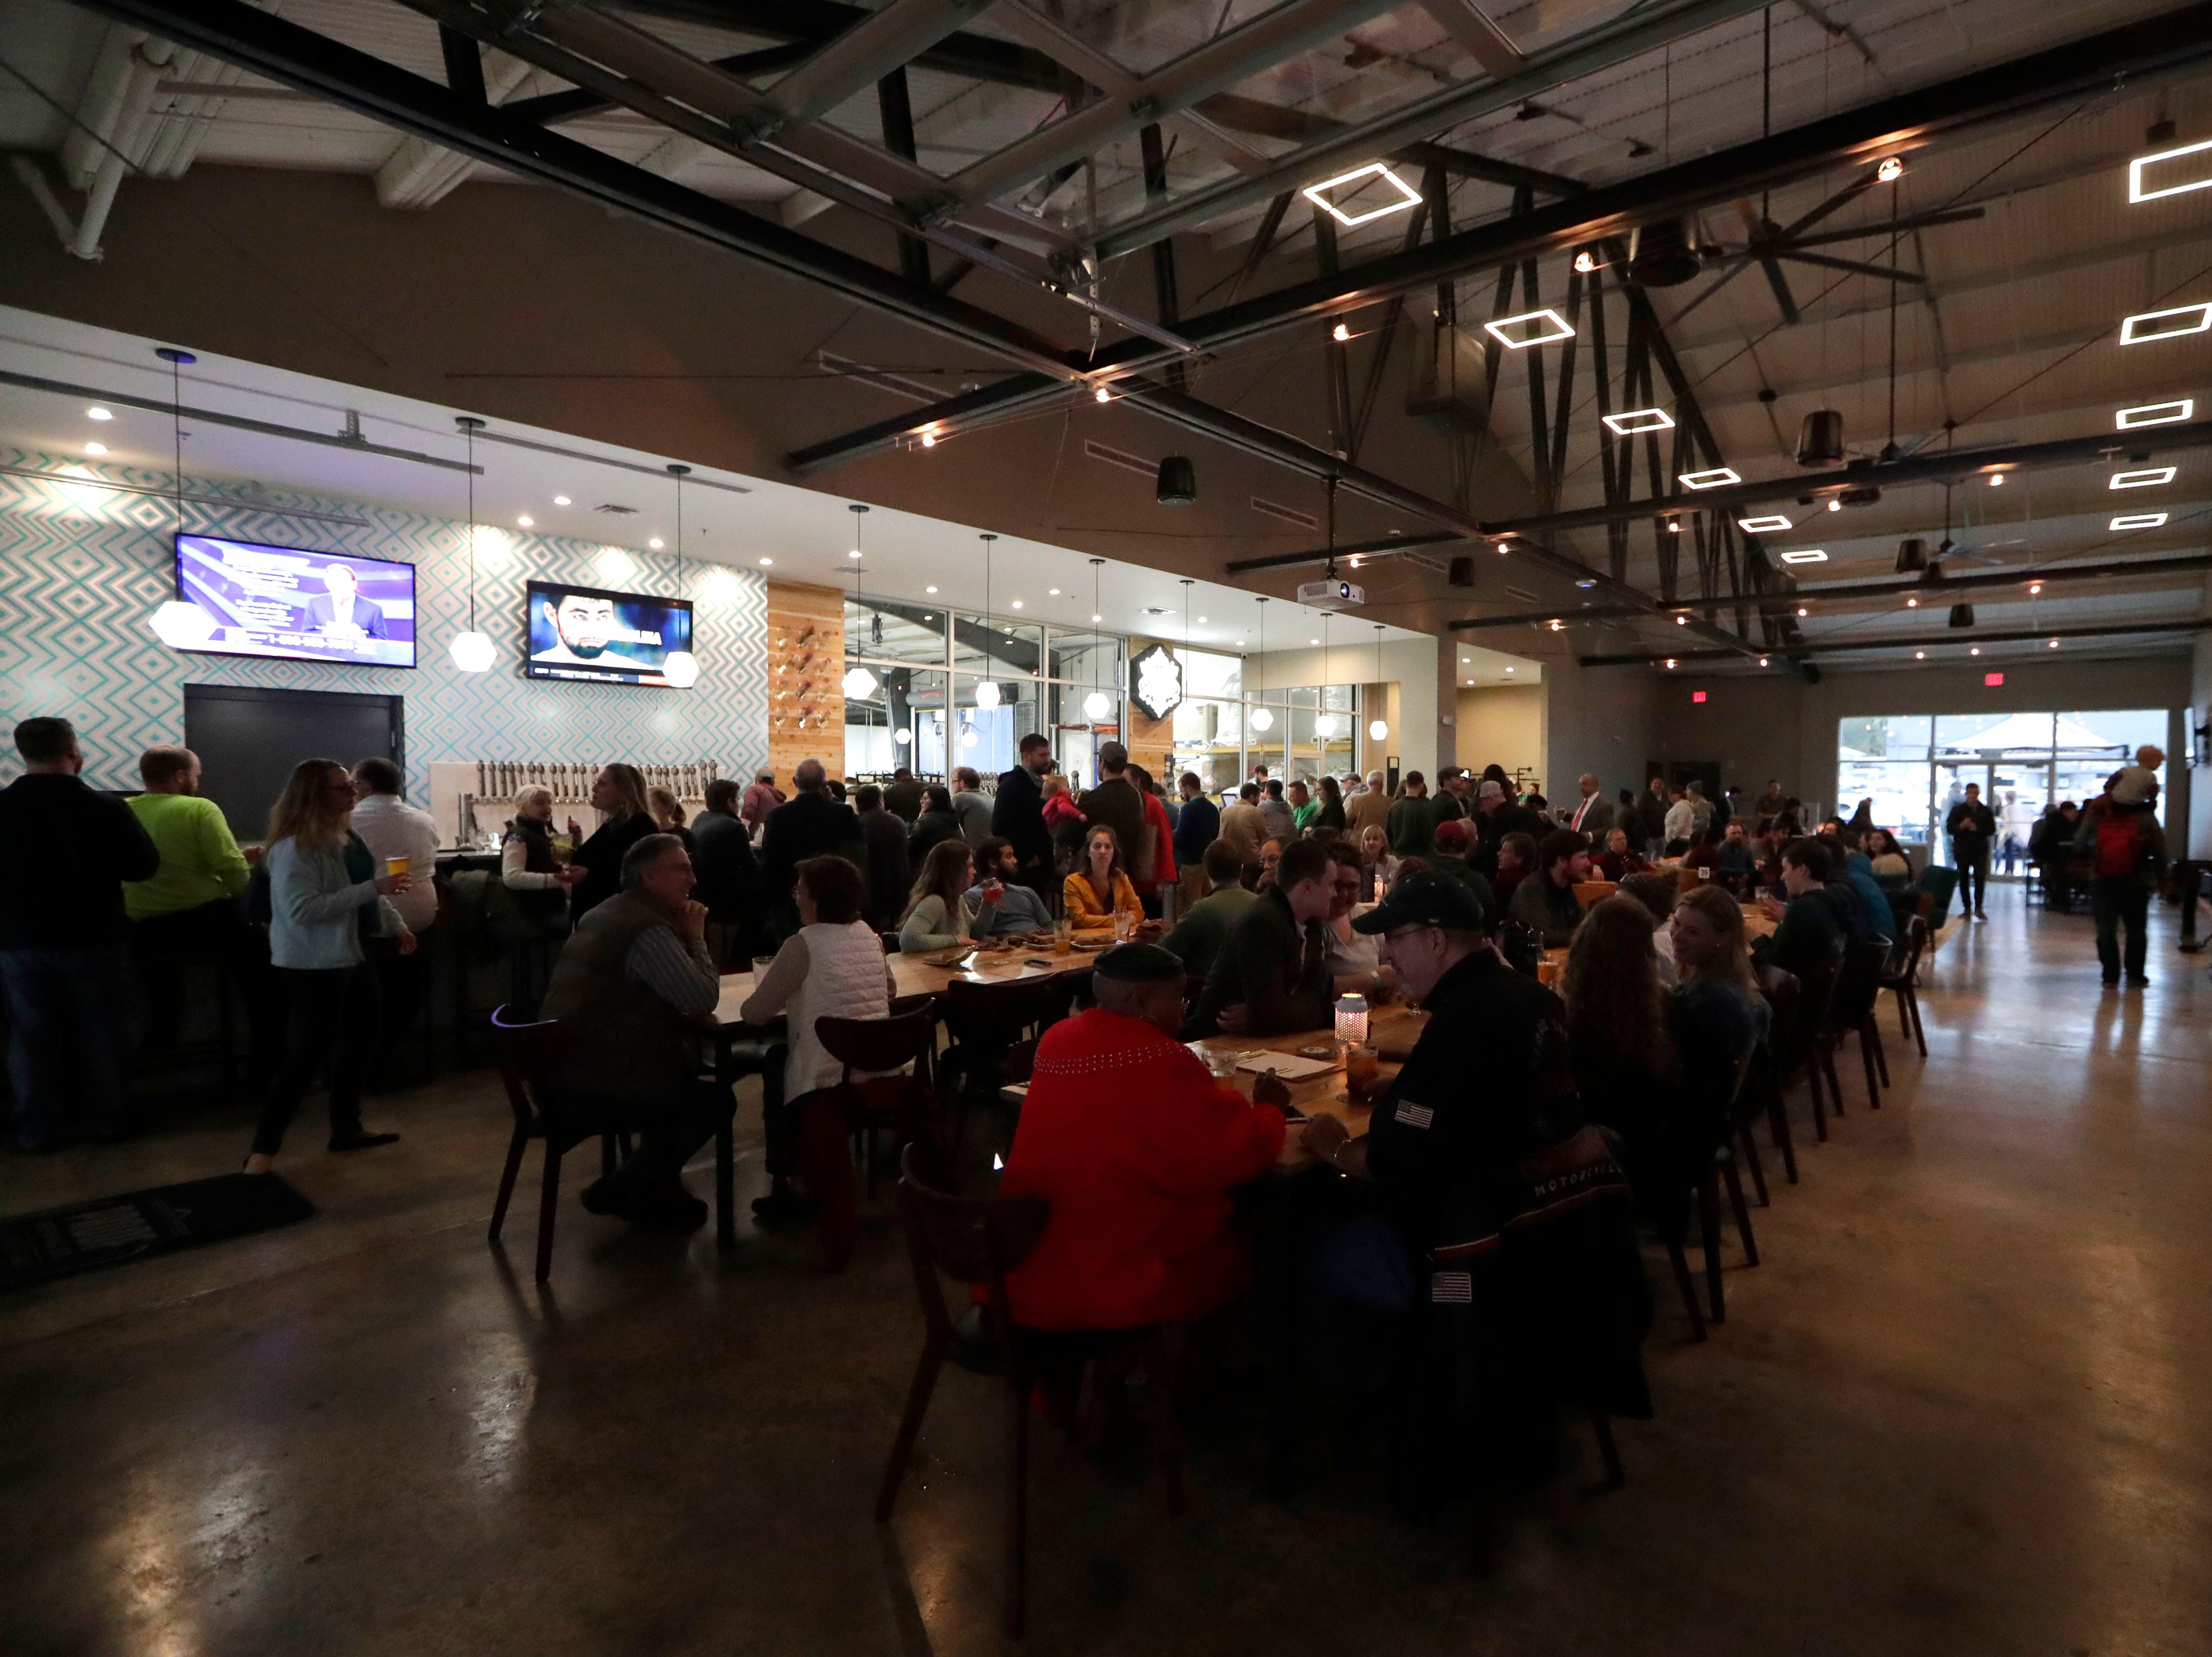 The inside seating and bar area packed with people at the new Proof Brewery during their soft opening Friday, Feb. 1, 2019.